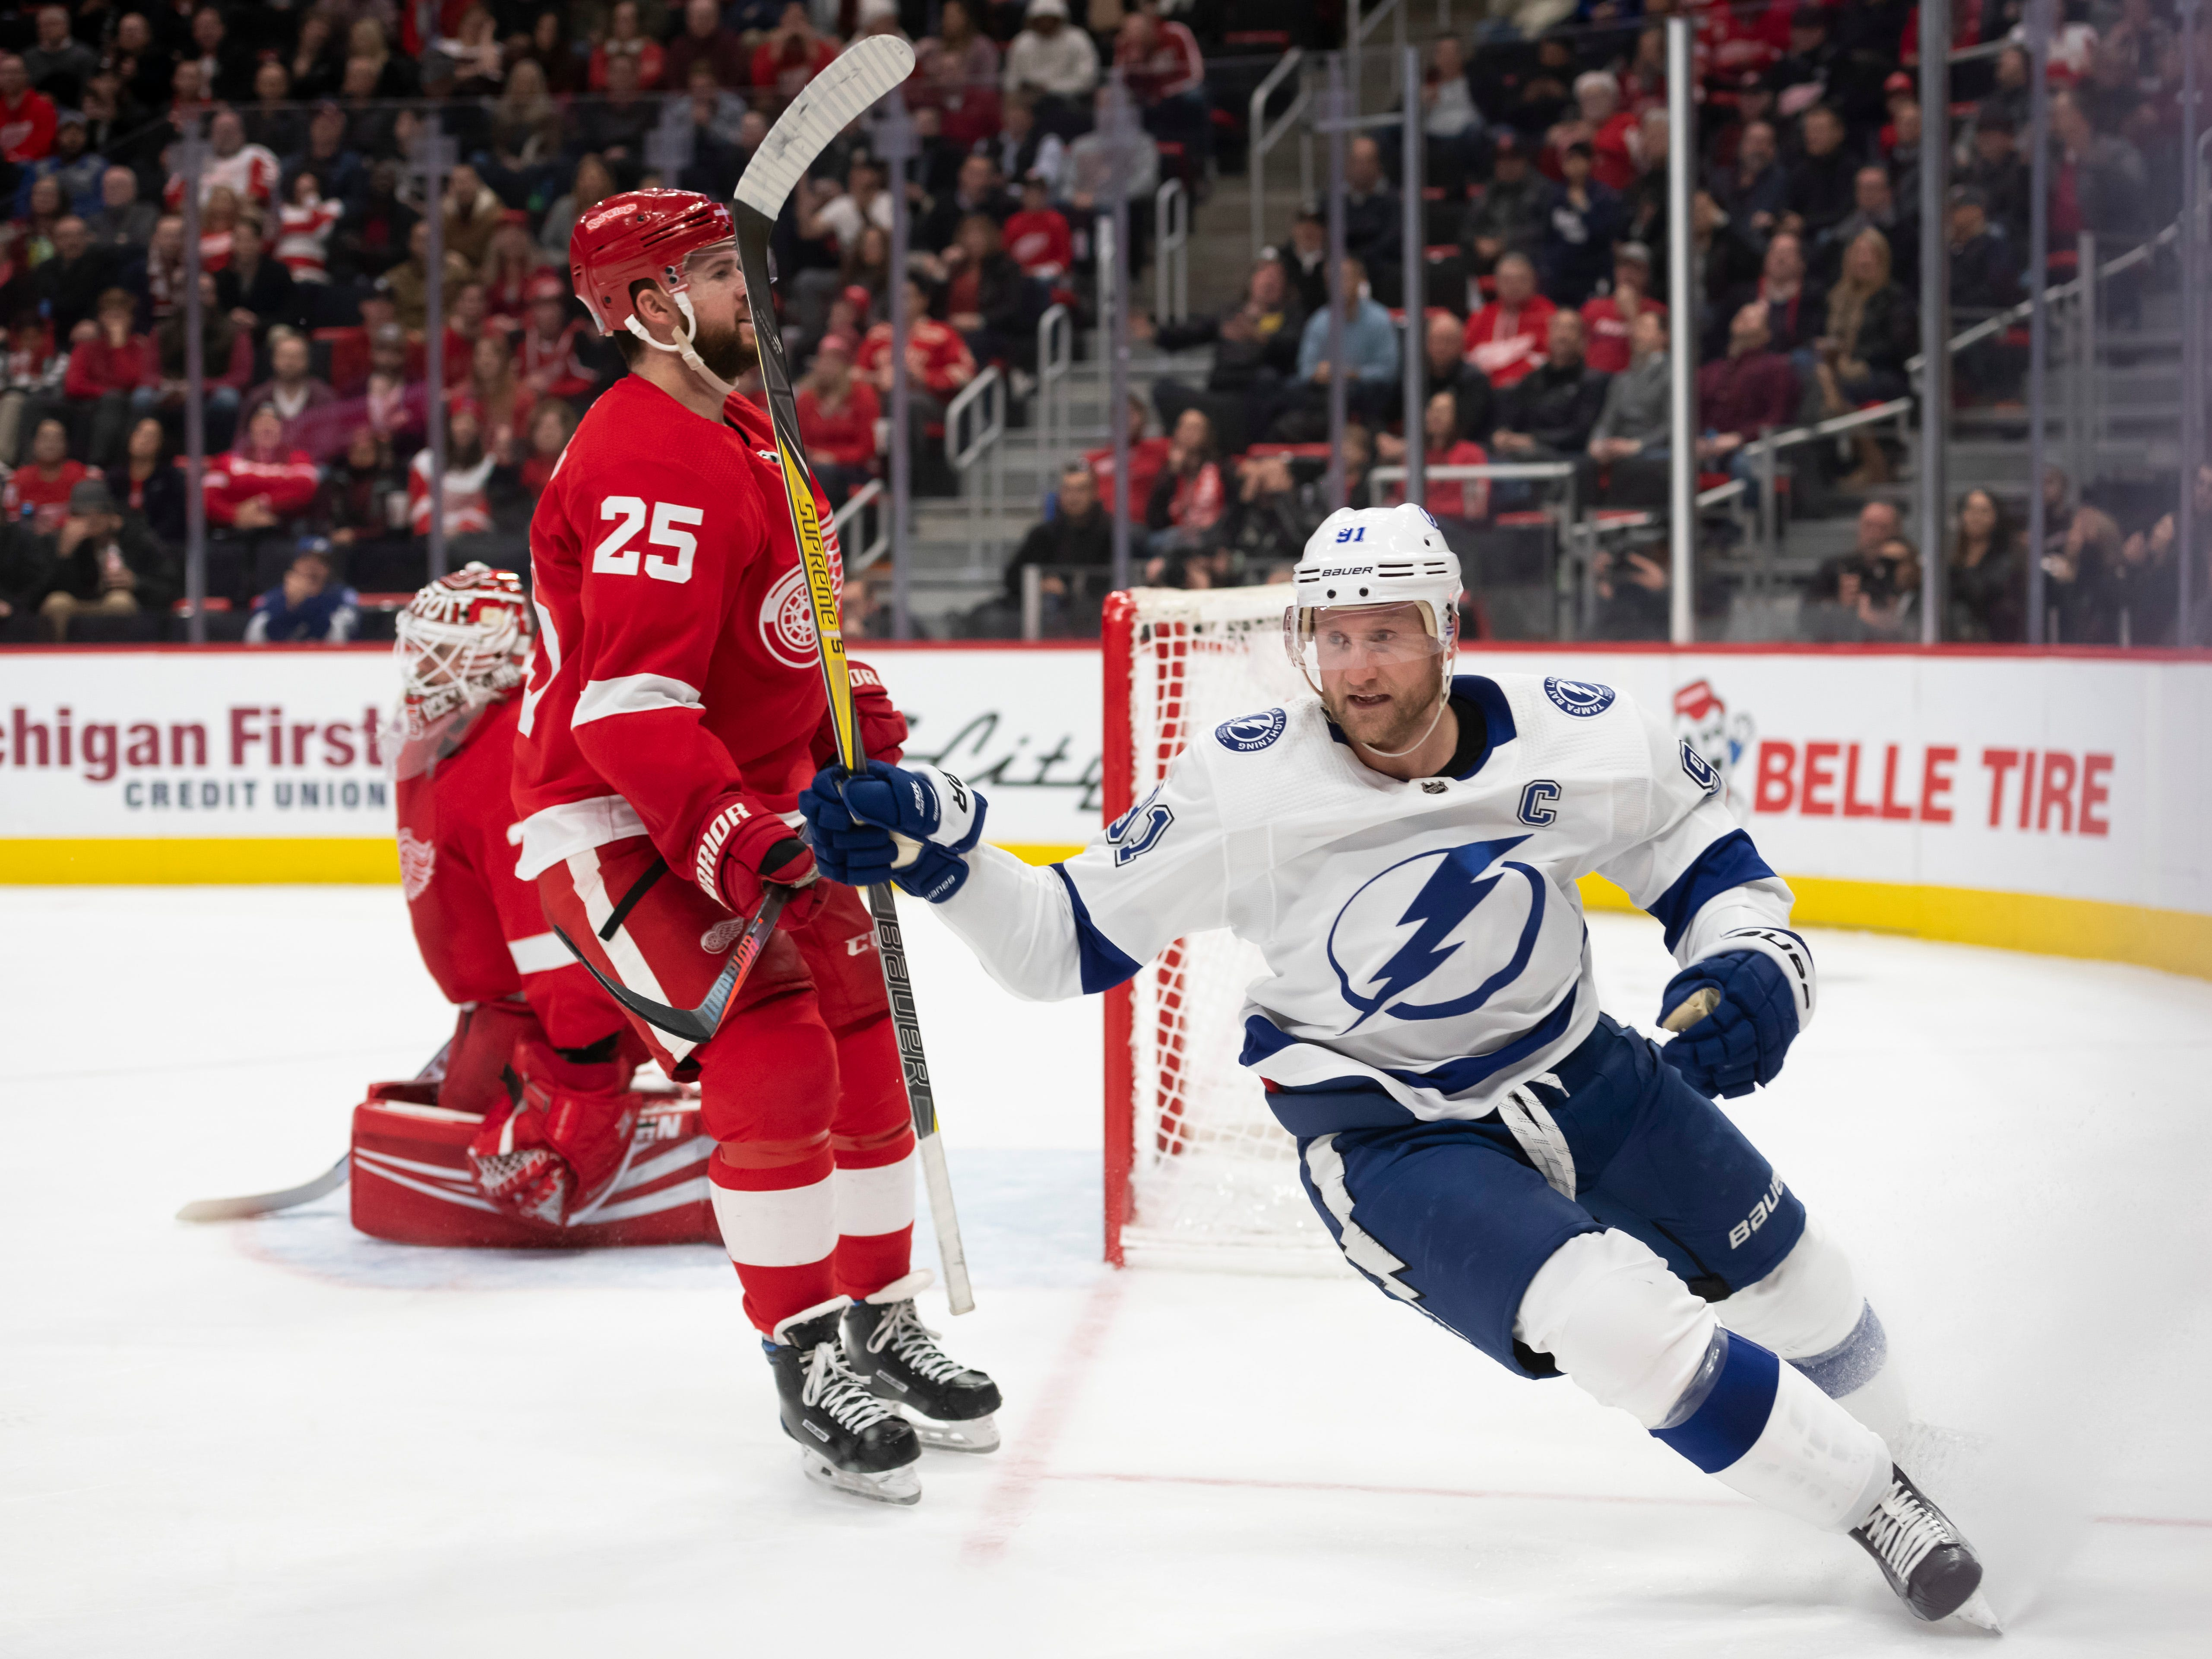 Tampa Bay center Steven Stamkos celebrates his second period goal in front of Detroit goaltender Jimmy Howard and defenseman Mike Green in the second period.